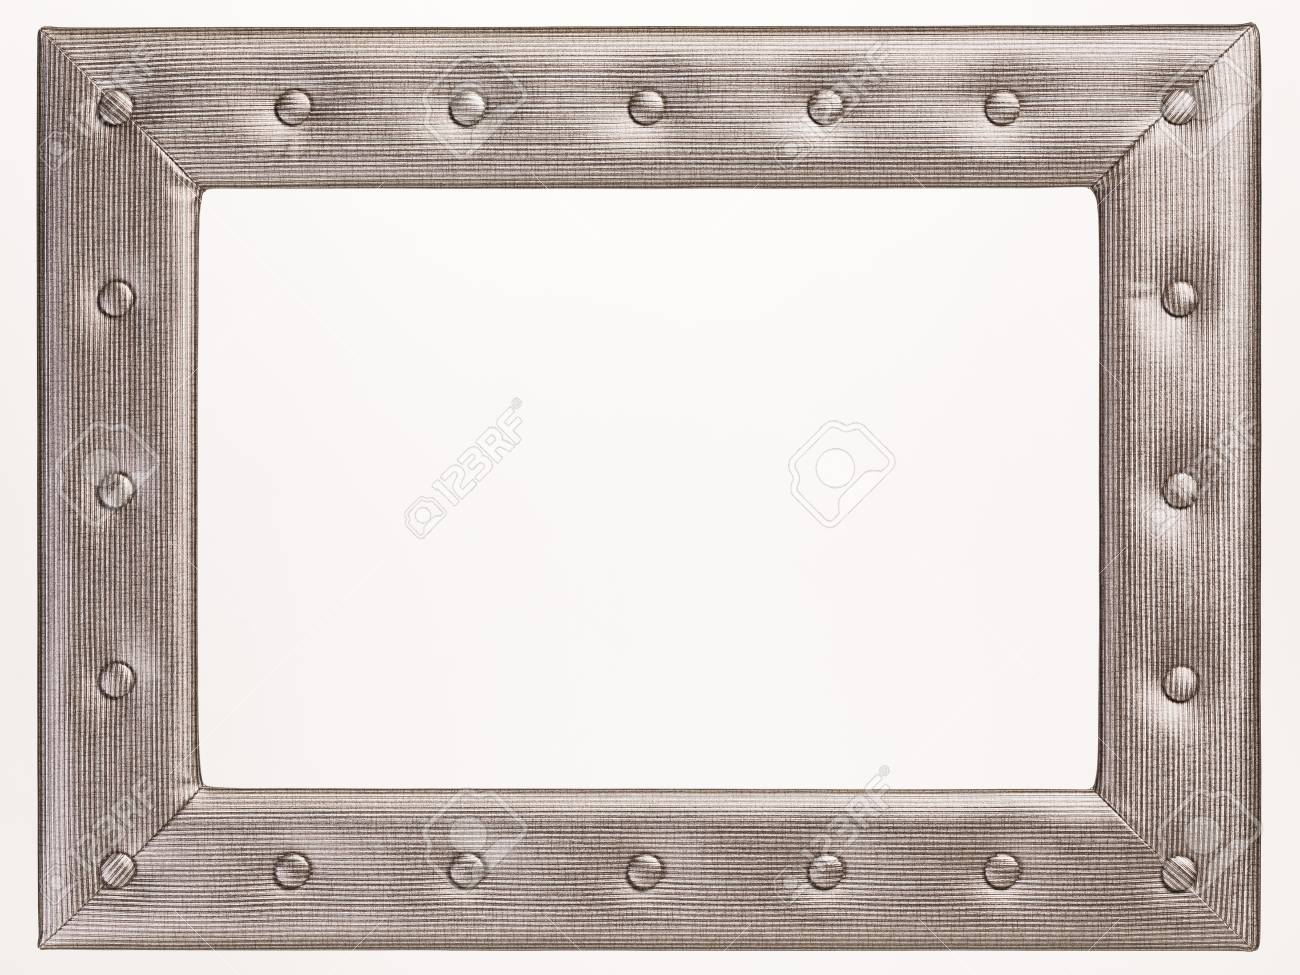 A Blank Leather Picture Frame On White Background Stock Photo ...